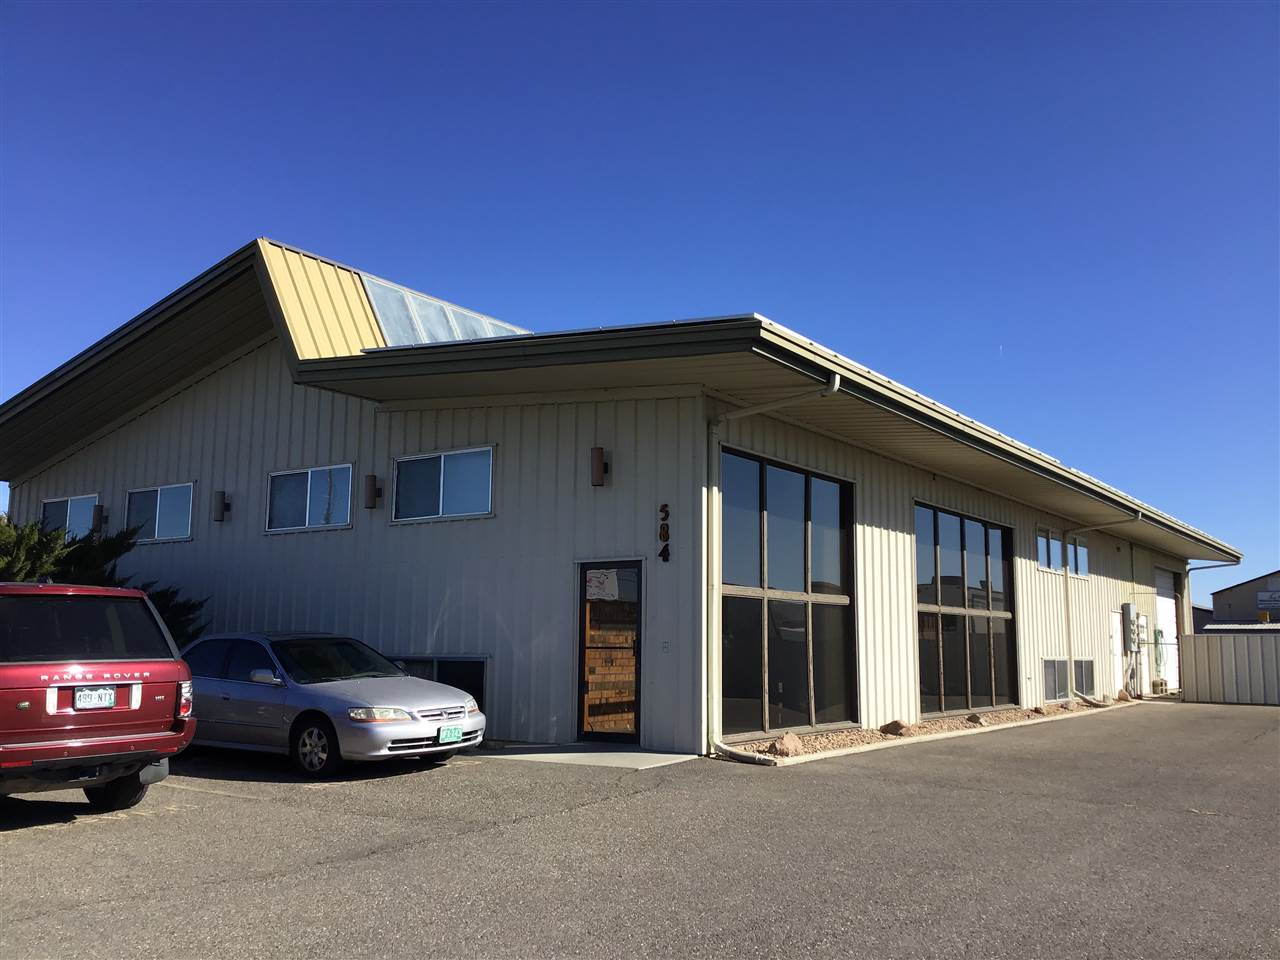 584 25 Road, Grand Junction, CO 81505